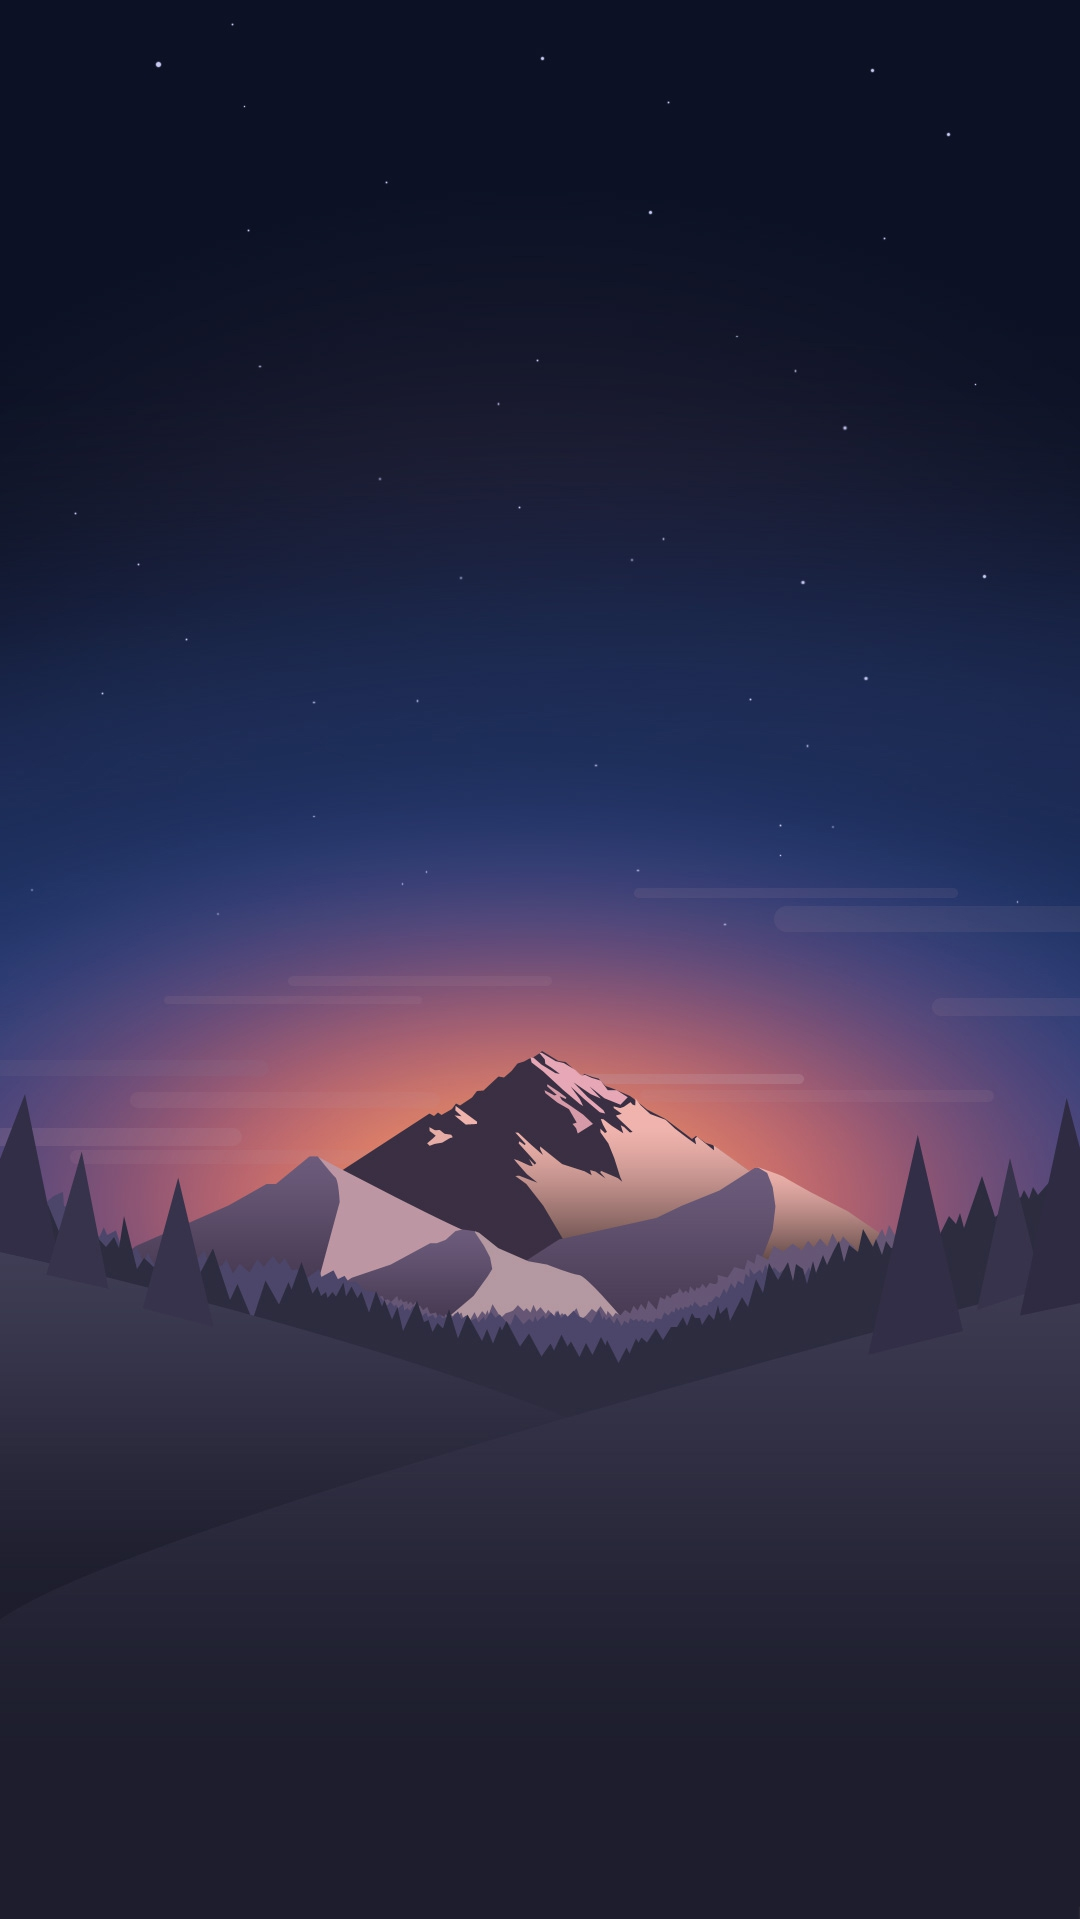 Cute Mobile Wallpaper For Samsung Galaxy Y Digital Minimal Mountains Forest Night Iphone Wallpaper